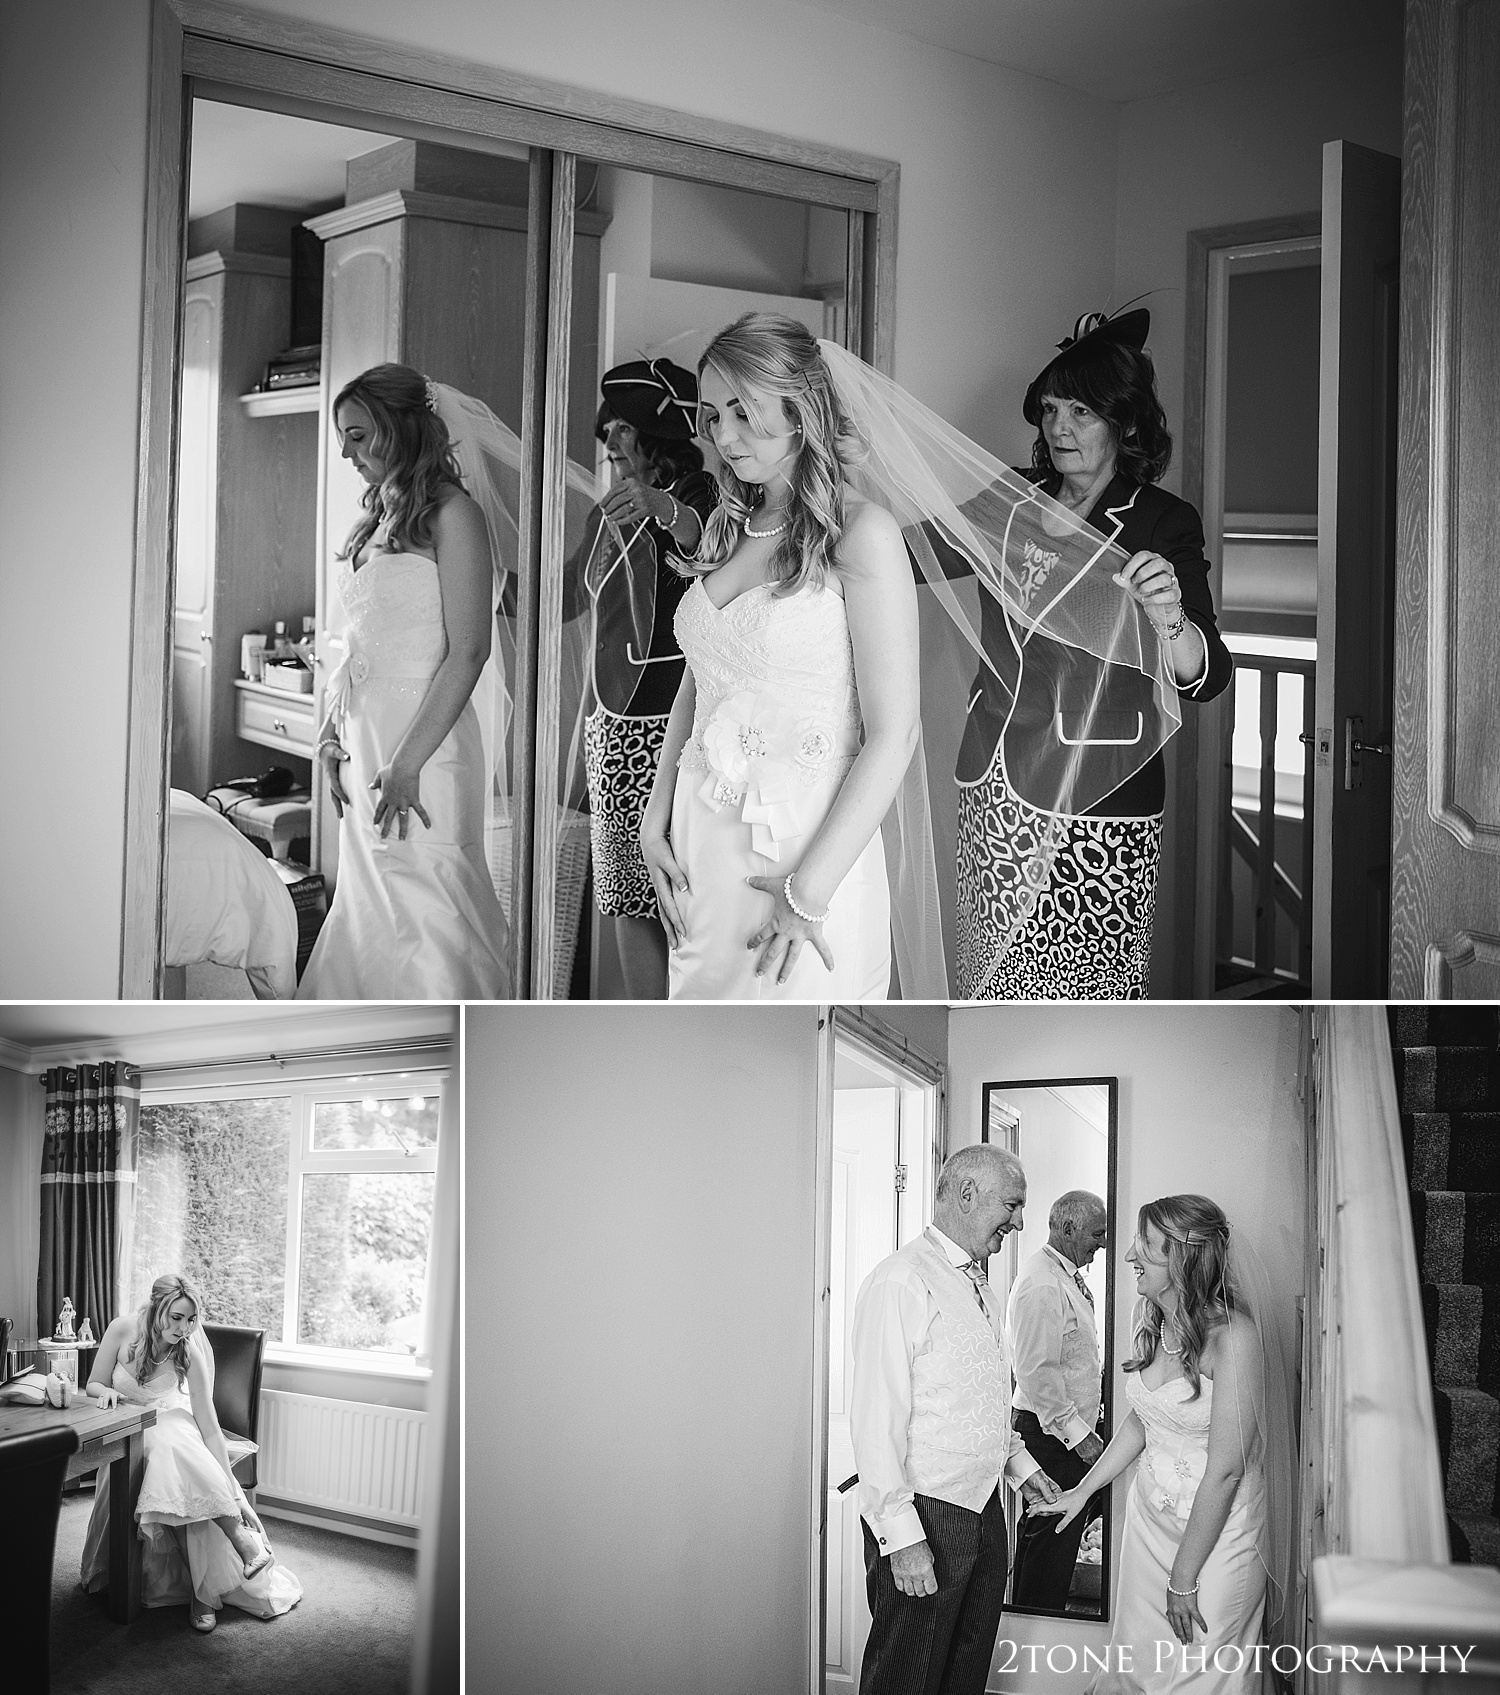 Wedding day getting ready by by www.2tonephotograhy.co.uk